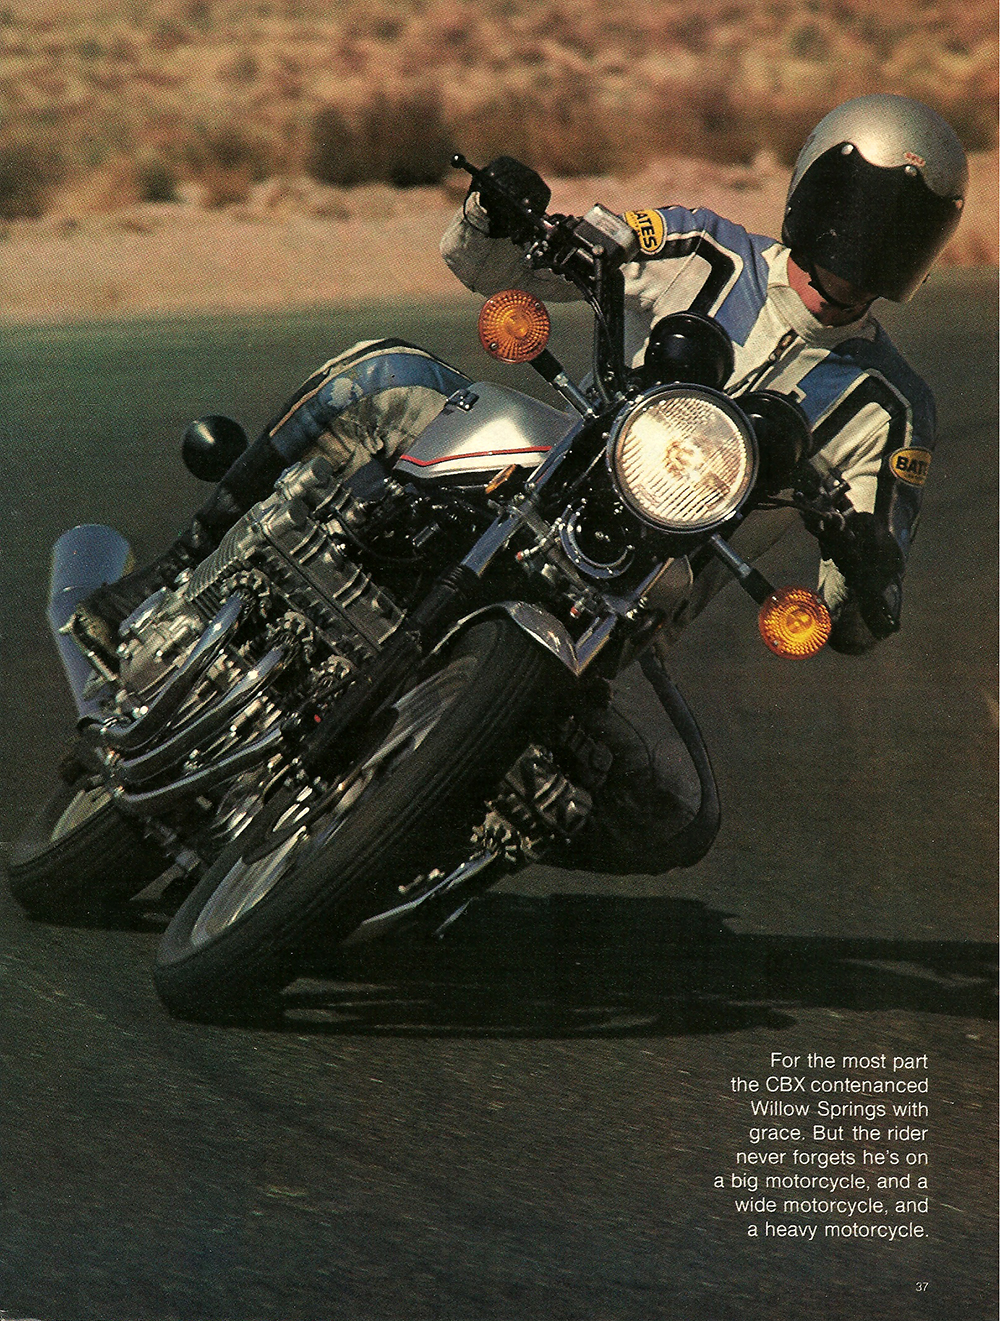 1978 Honda CBX Super Sport road test 04.jpg